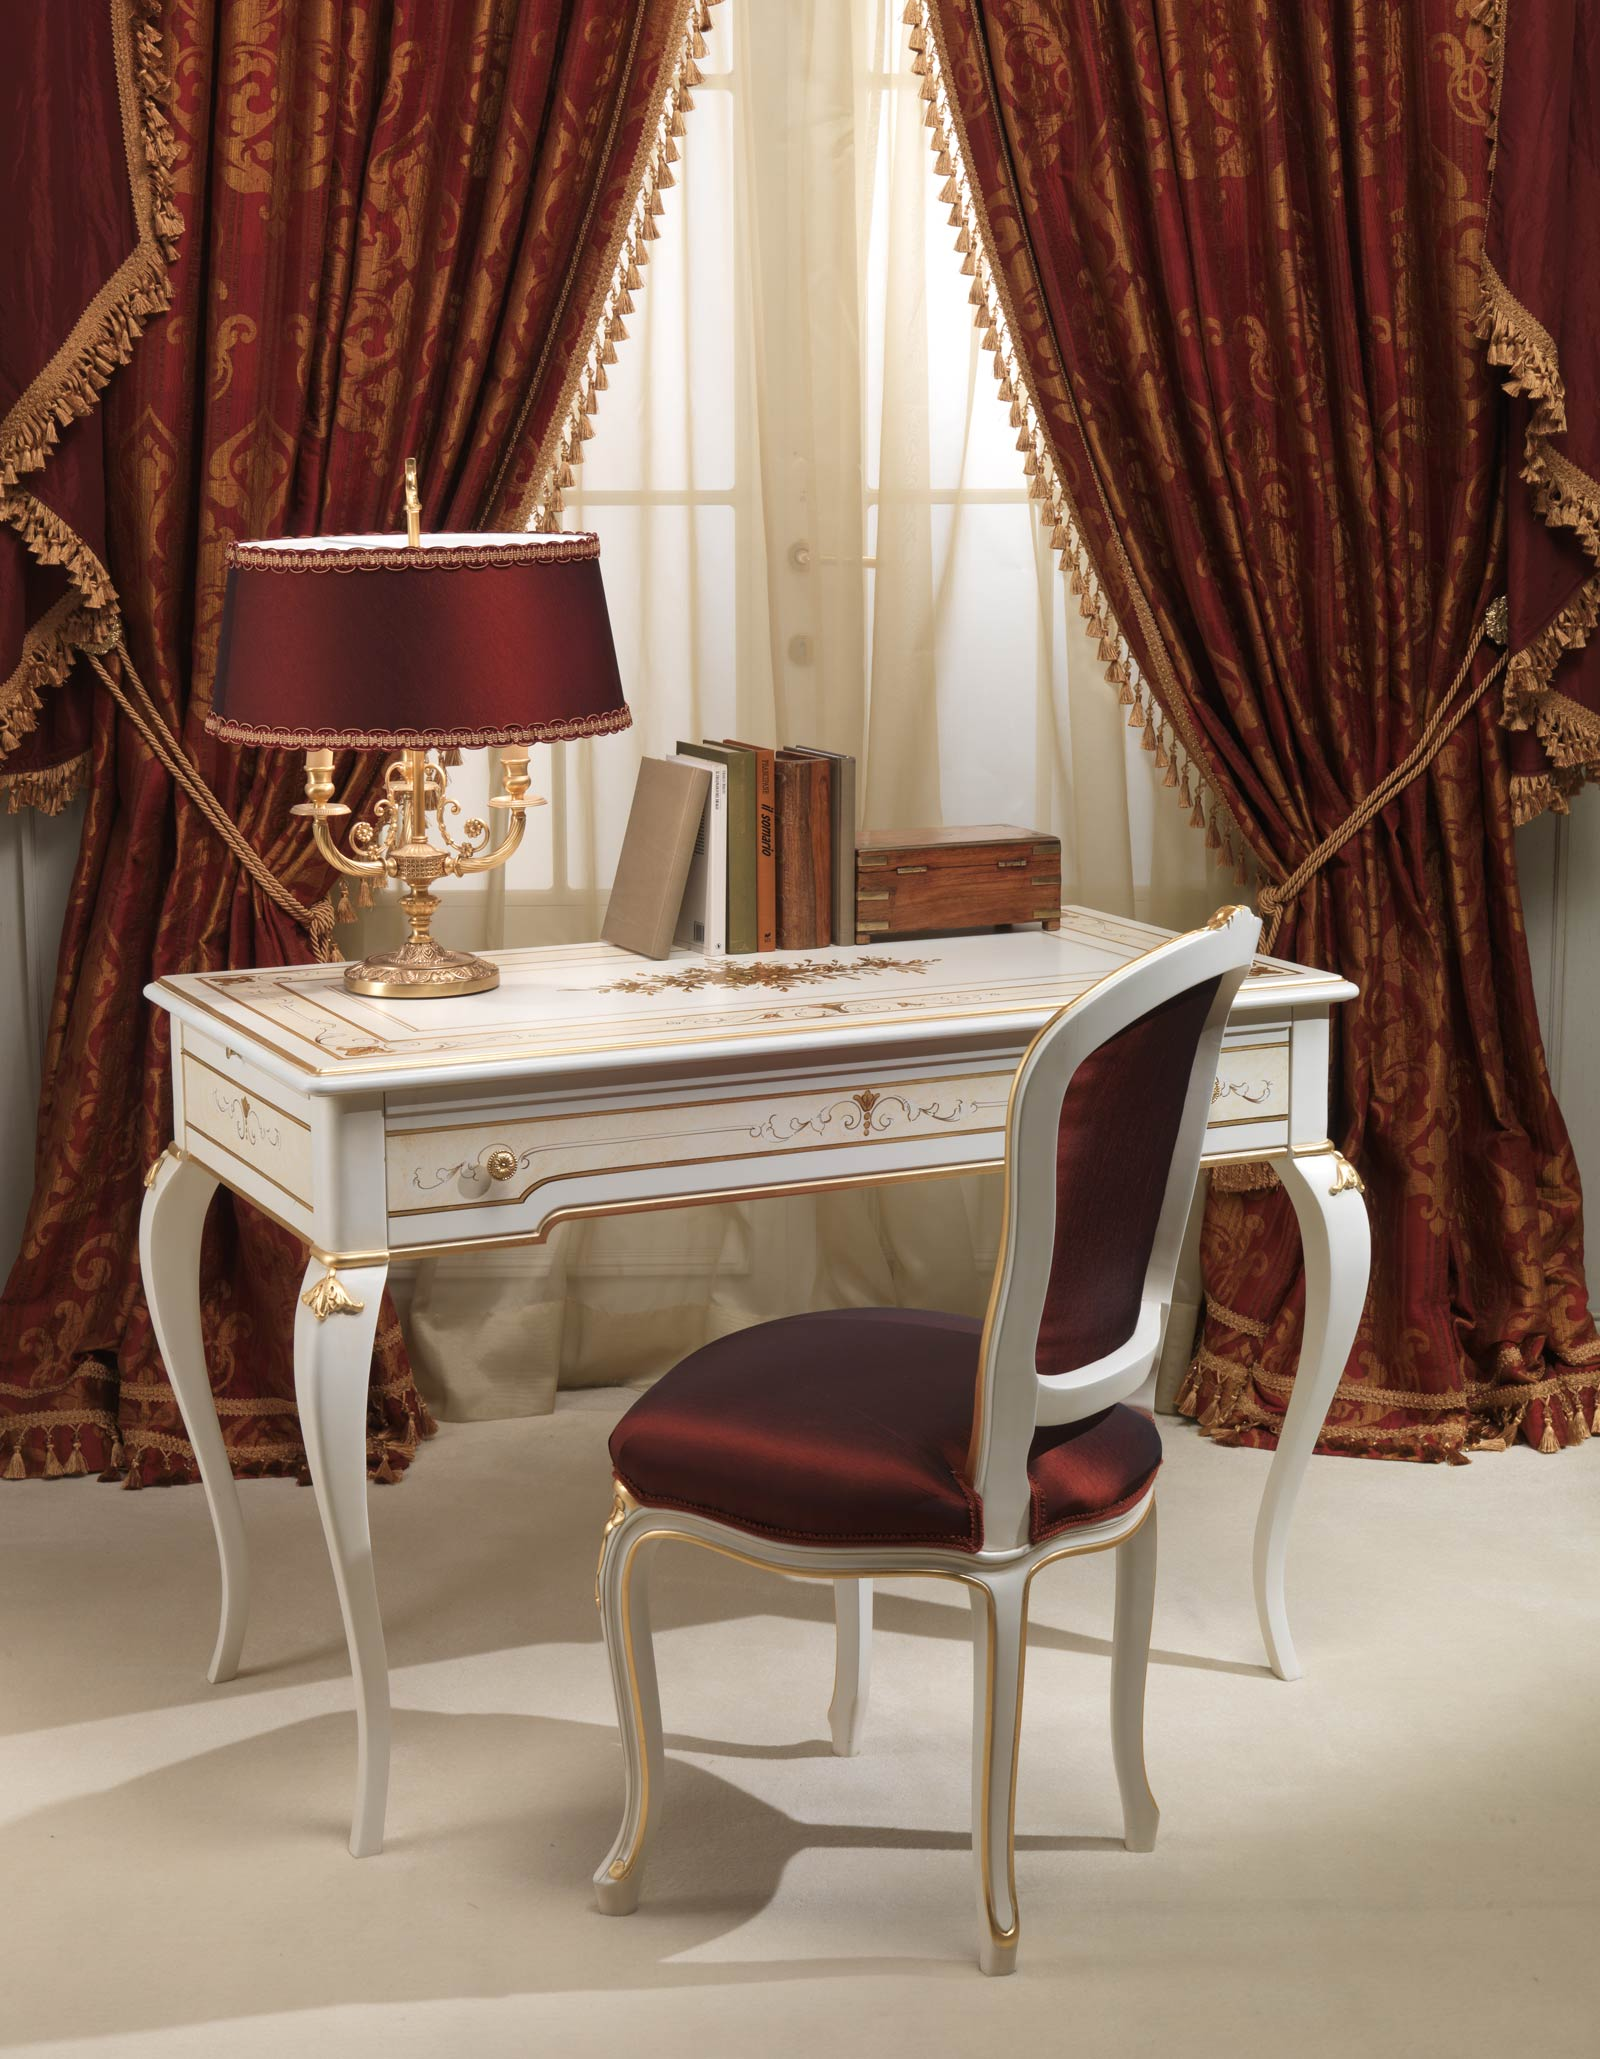 Classic Rubens 18th century french style bedroom desk and